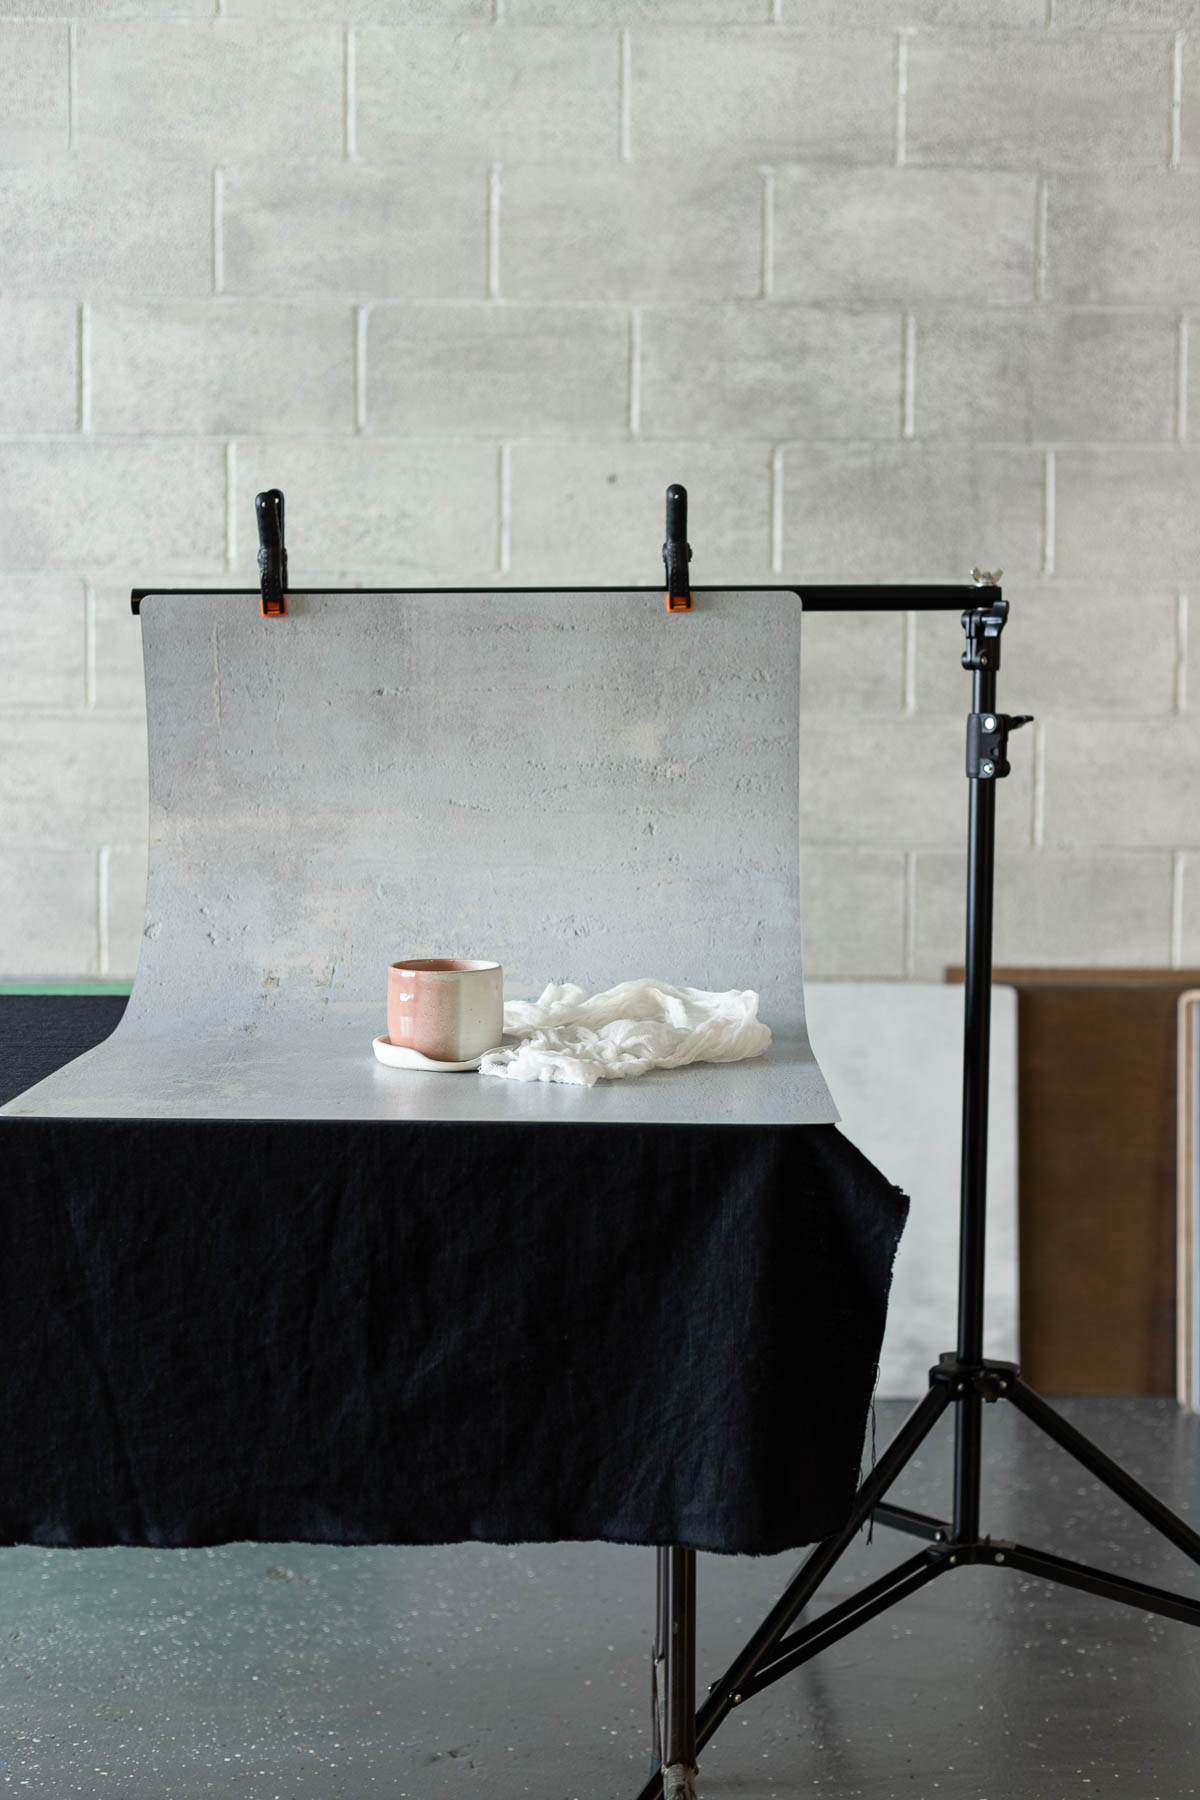 backdrop with a pink cup held up with a photo stand